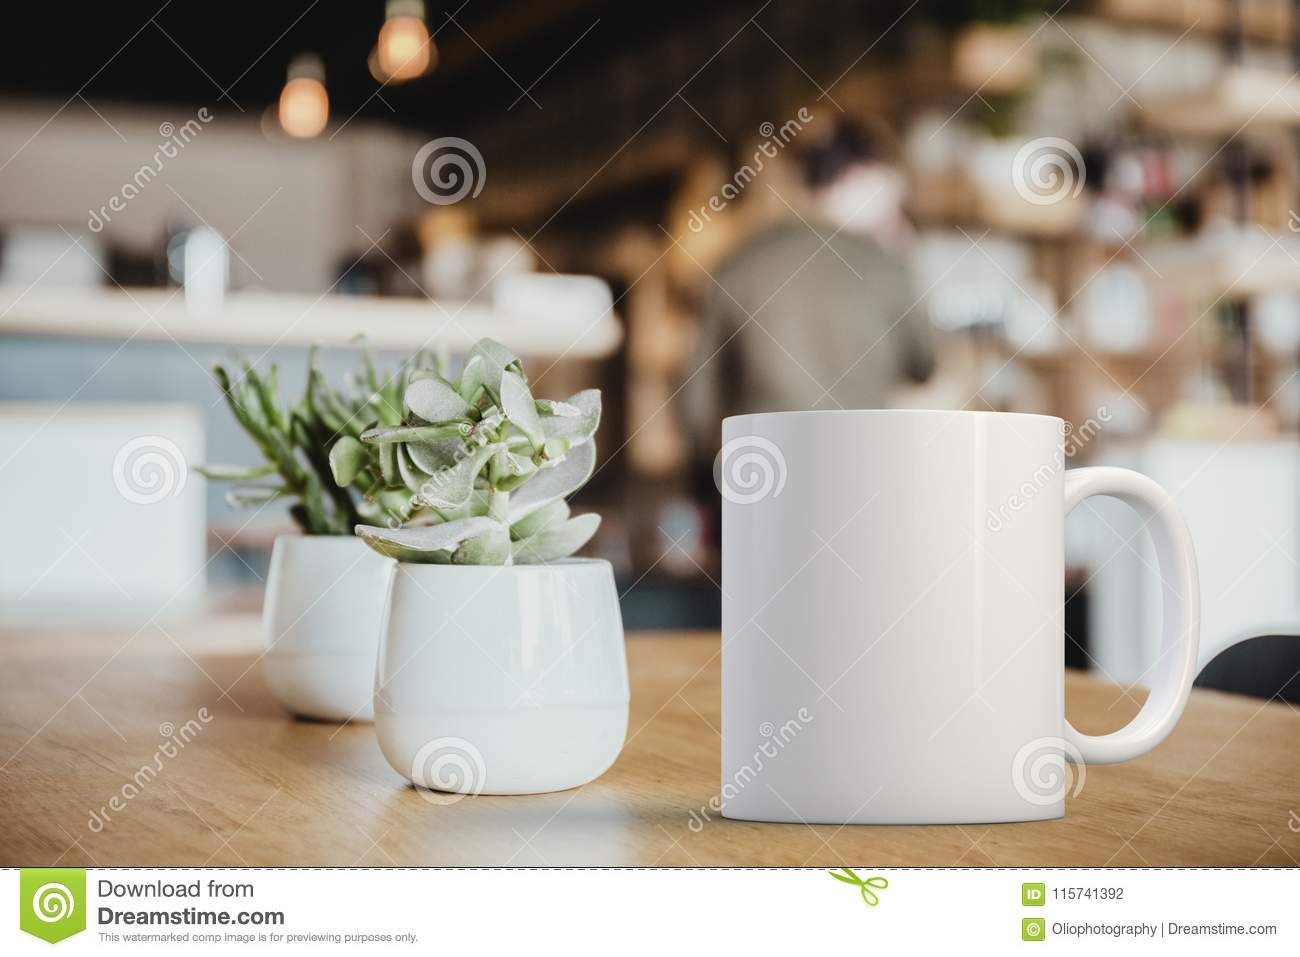 Mug A Cafe White Mug Mockup Stock Photo Image Of Photograph Stock 115741392